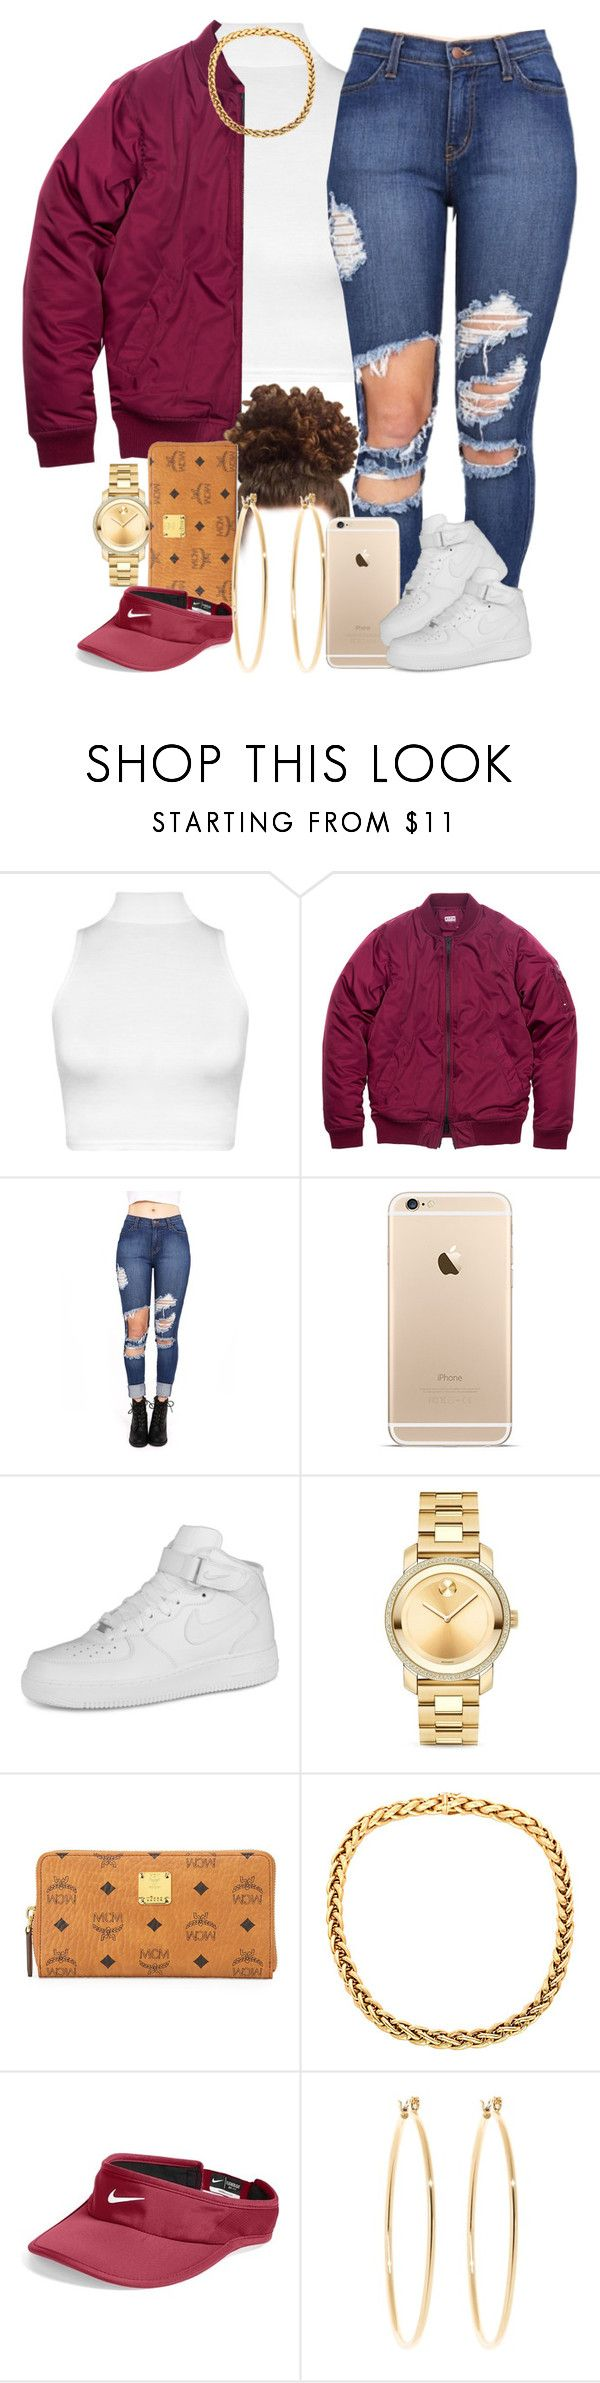 """""""Distressed. """" by livelifefreelyy ❤ liked on Polyvore featuring WearAll, NIKE, Movado, MCM, Brooks Brothers, women's clothing, women, female, woman and misses"""